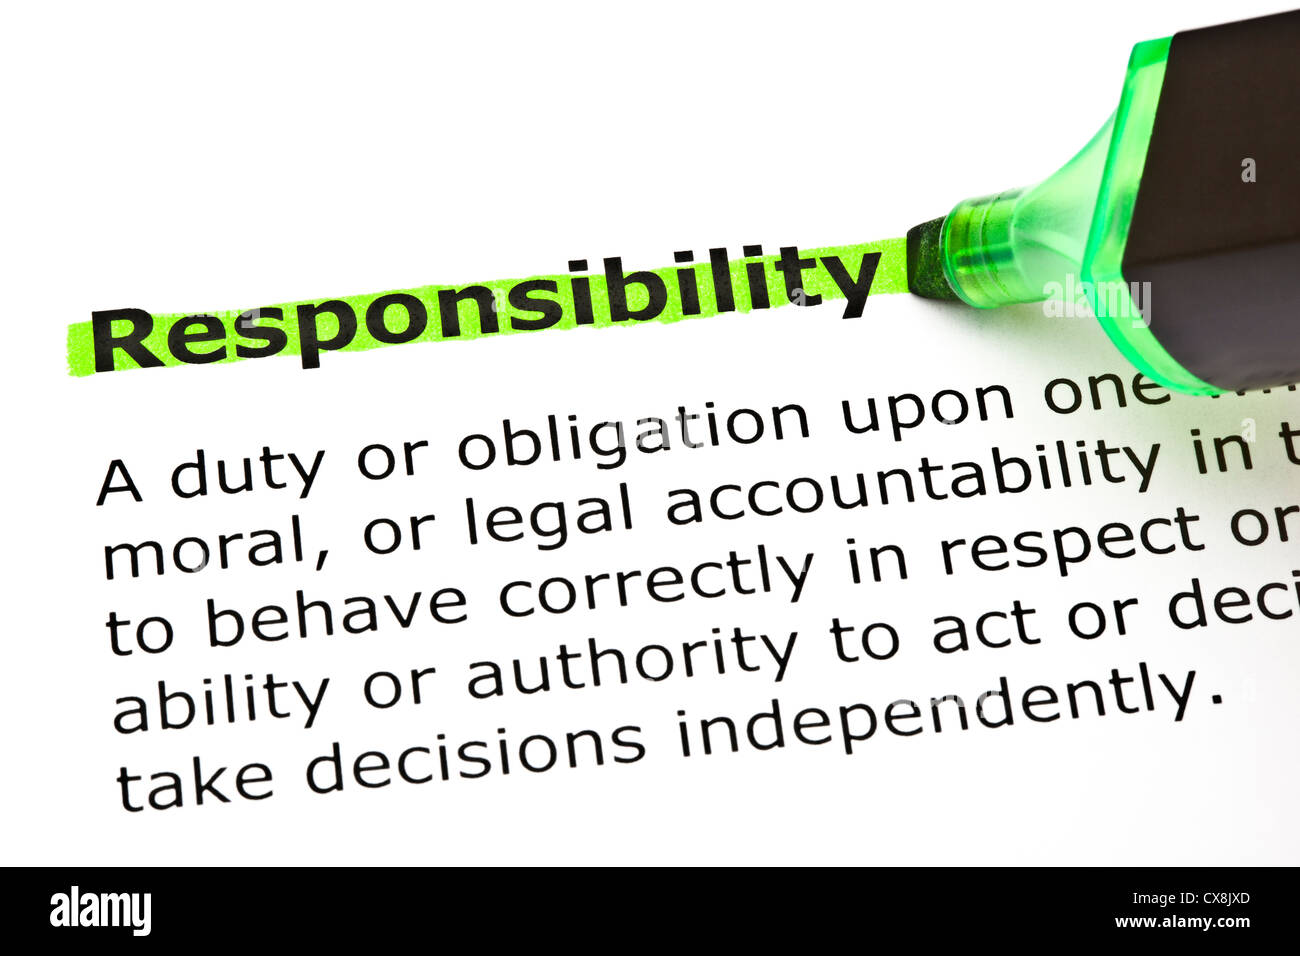 Definition of the word Responsibility highlighted in green with felt tip pen - Stock Image